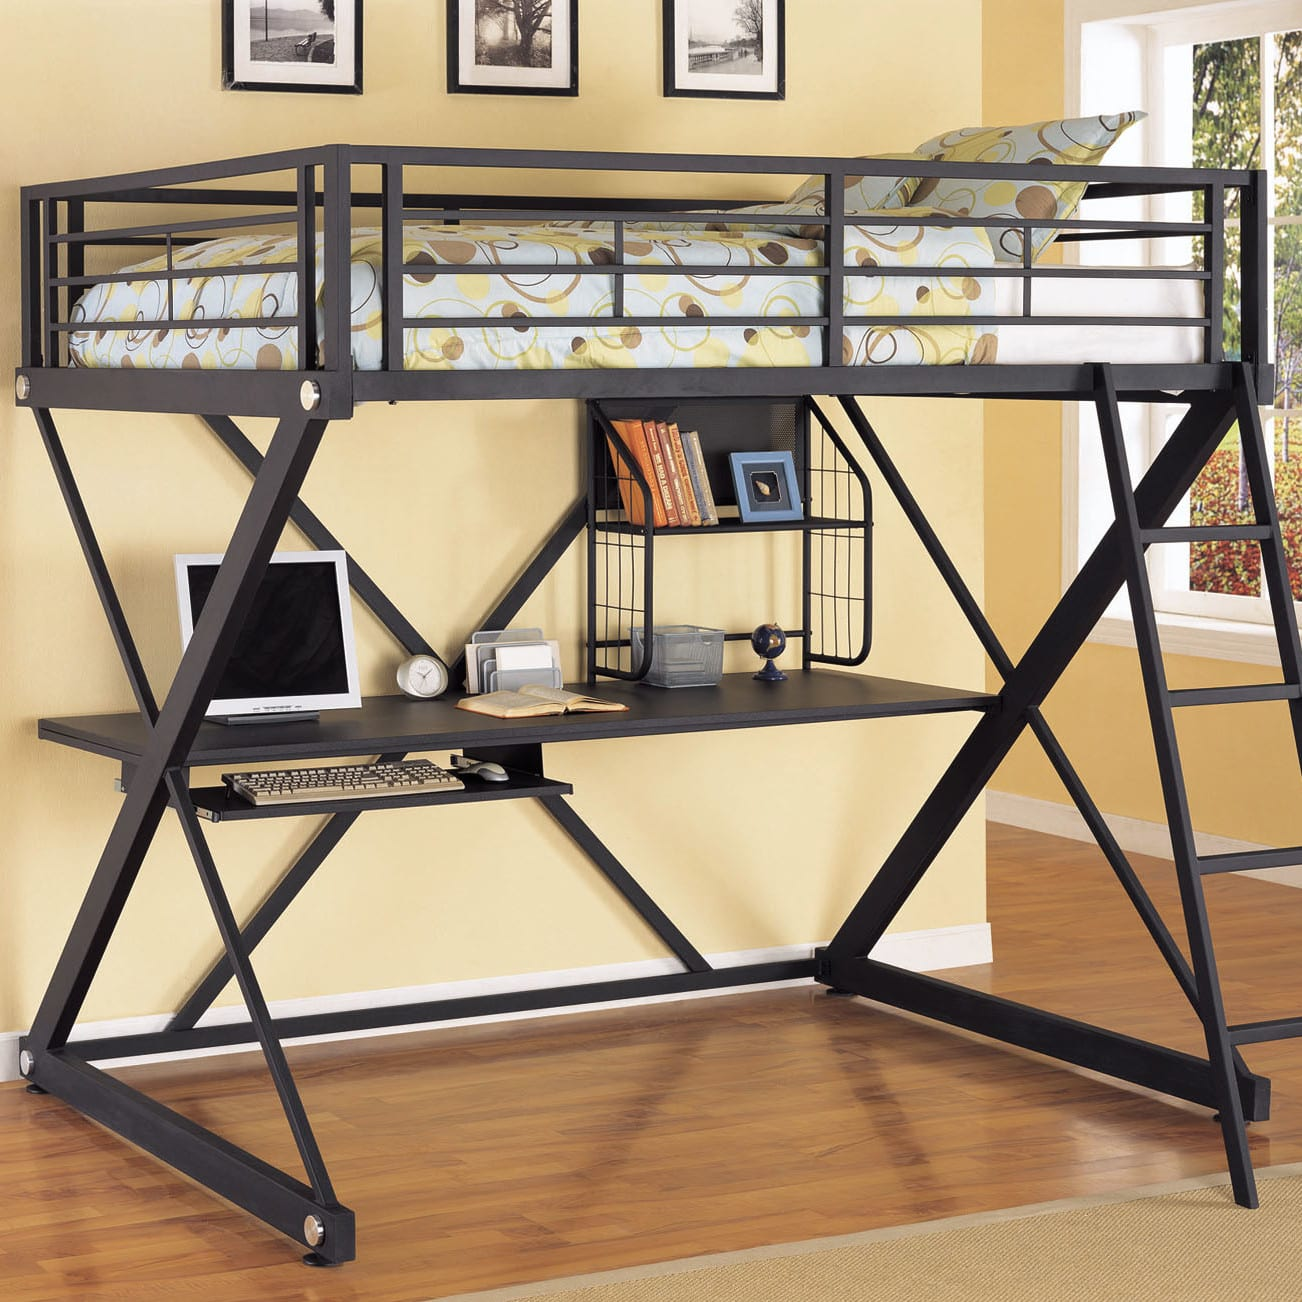 loft black desk cfm z master full with duro bed product hayneedle zbunkbedloftdeskblack bunk